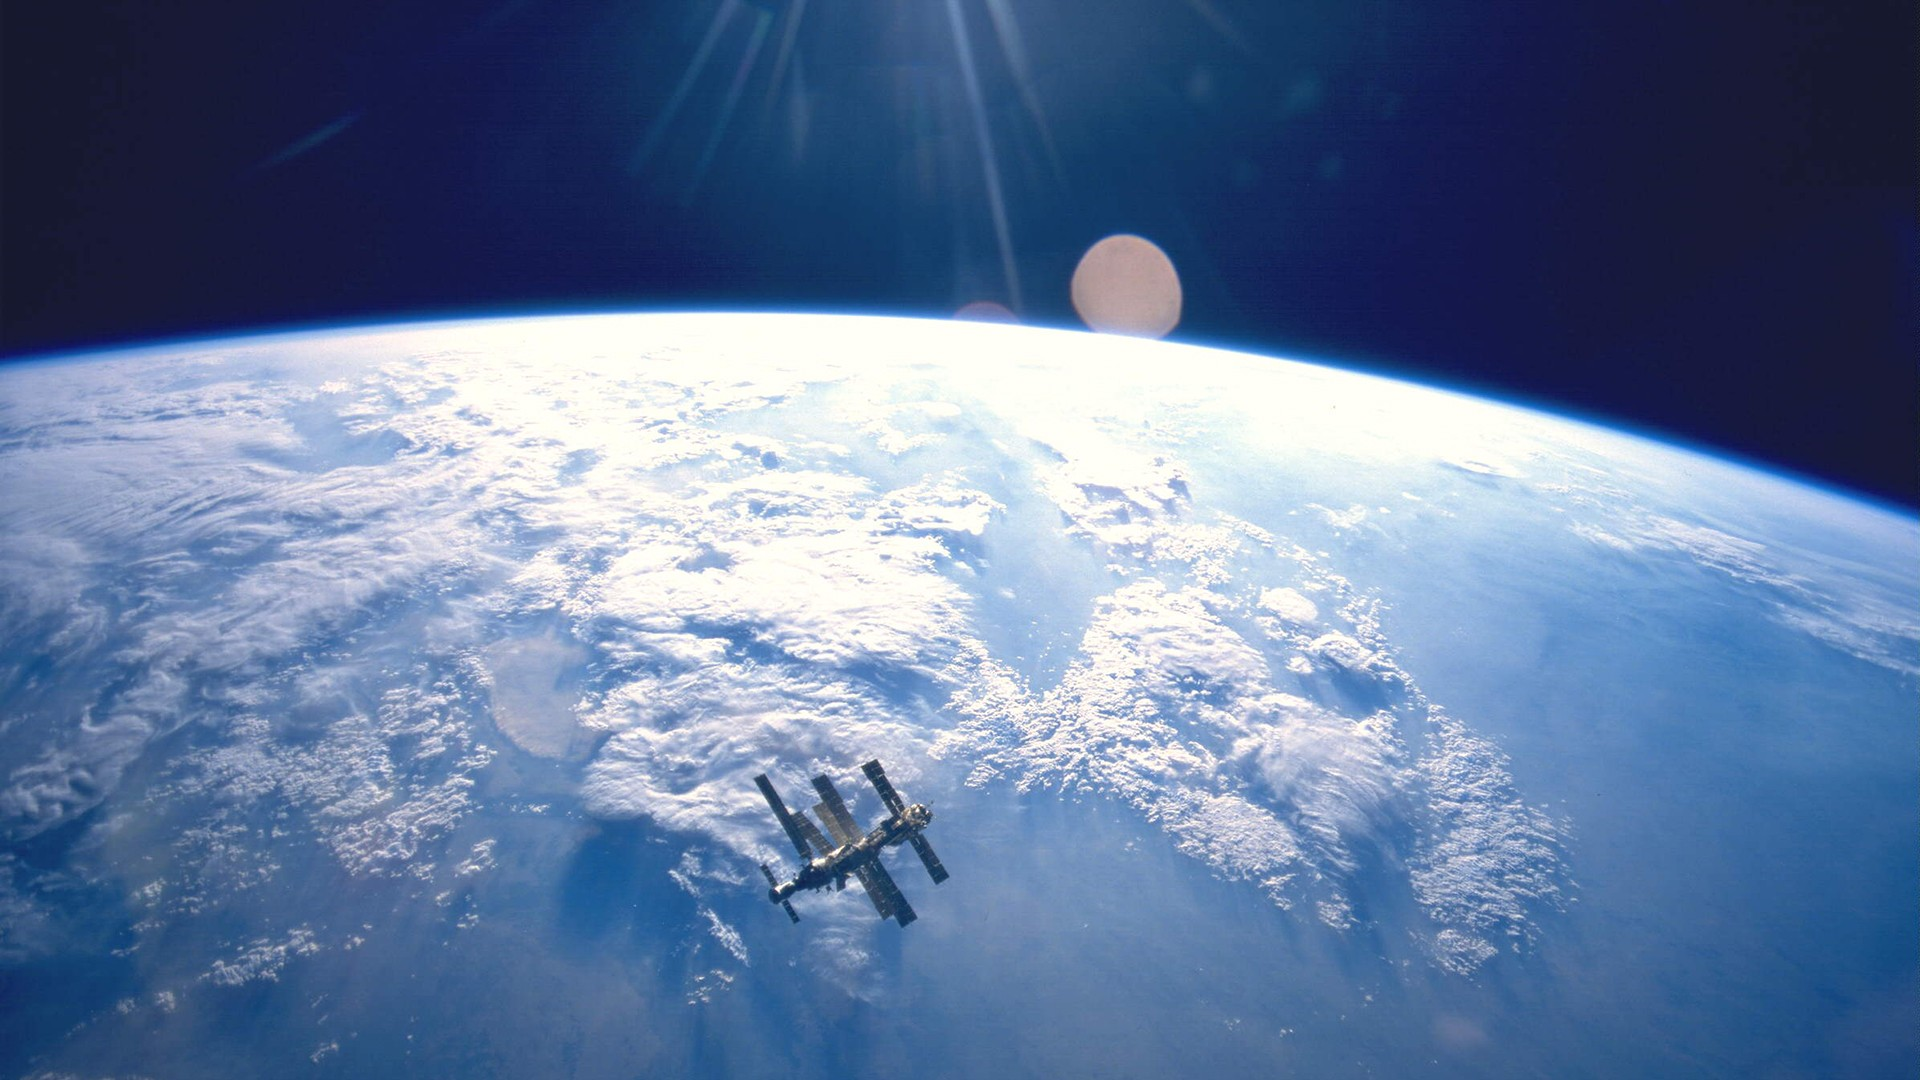 Earth-from-space-backgrounds-wallpaper-wp3405154